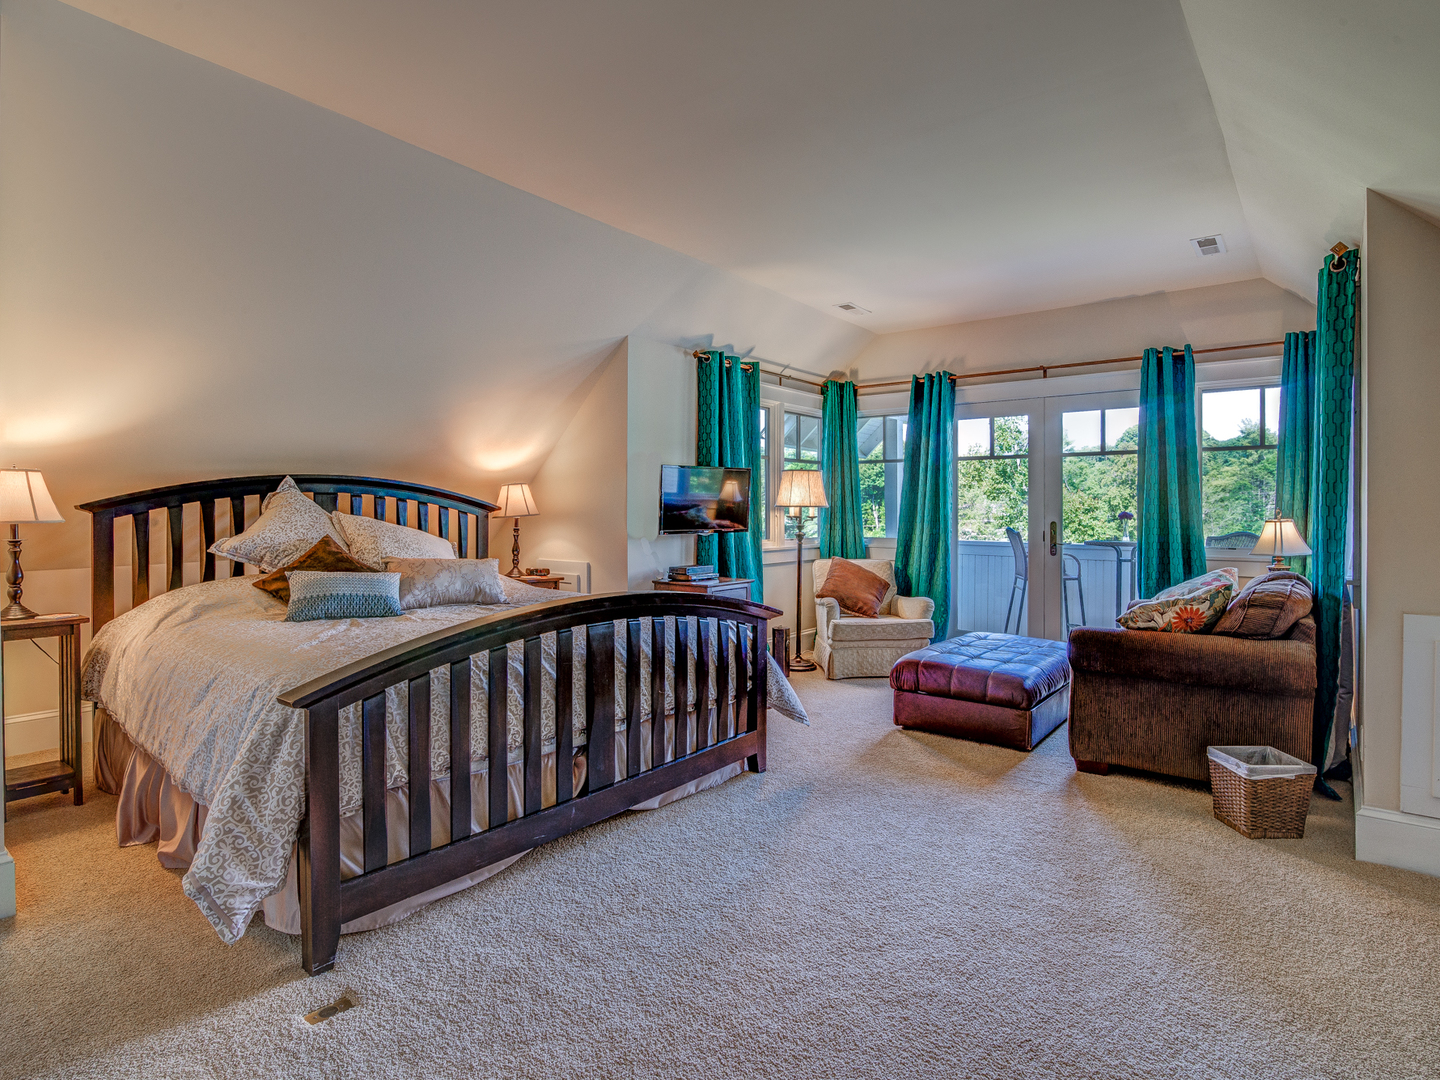 A living room filled with furniture and a bed in a bedroom at Arbor House of Black Mountain Bed and Breakfast.